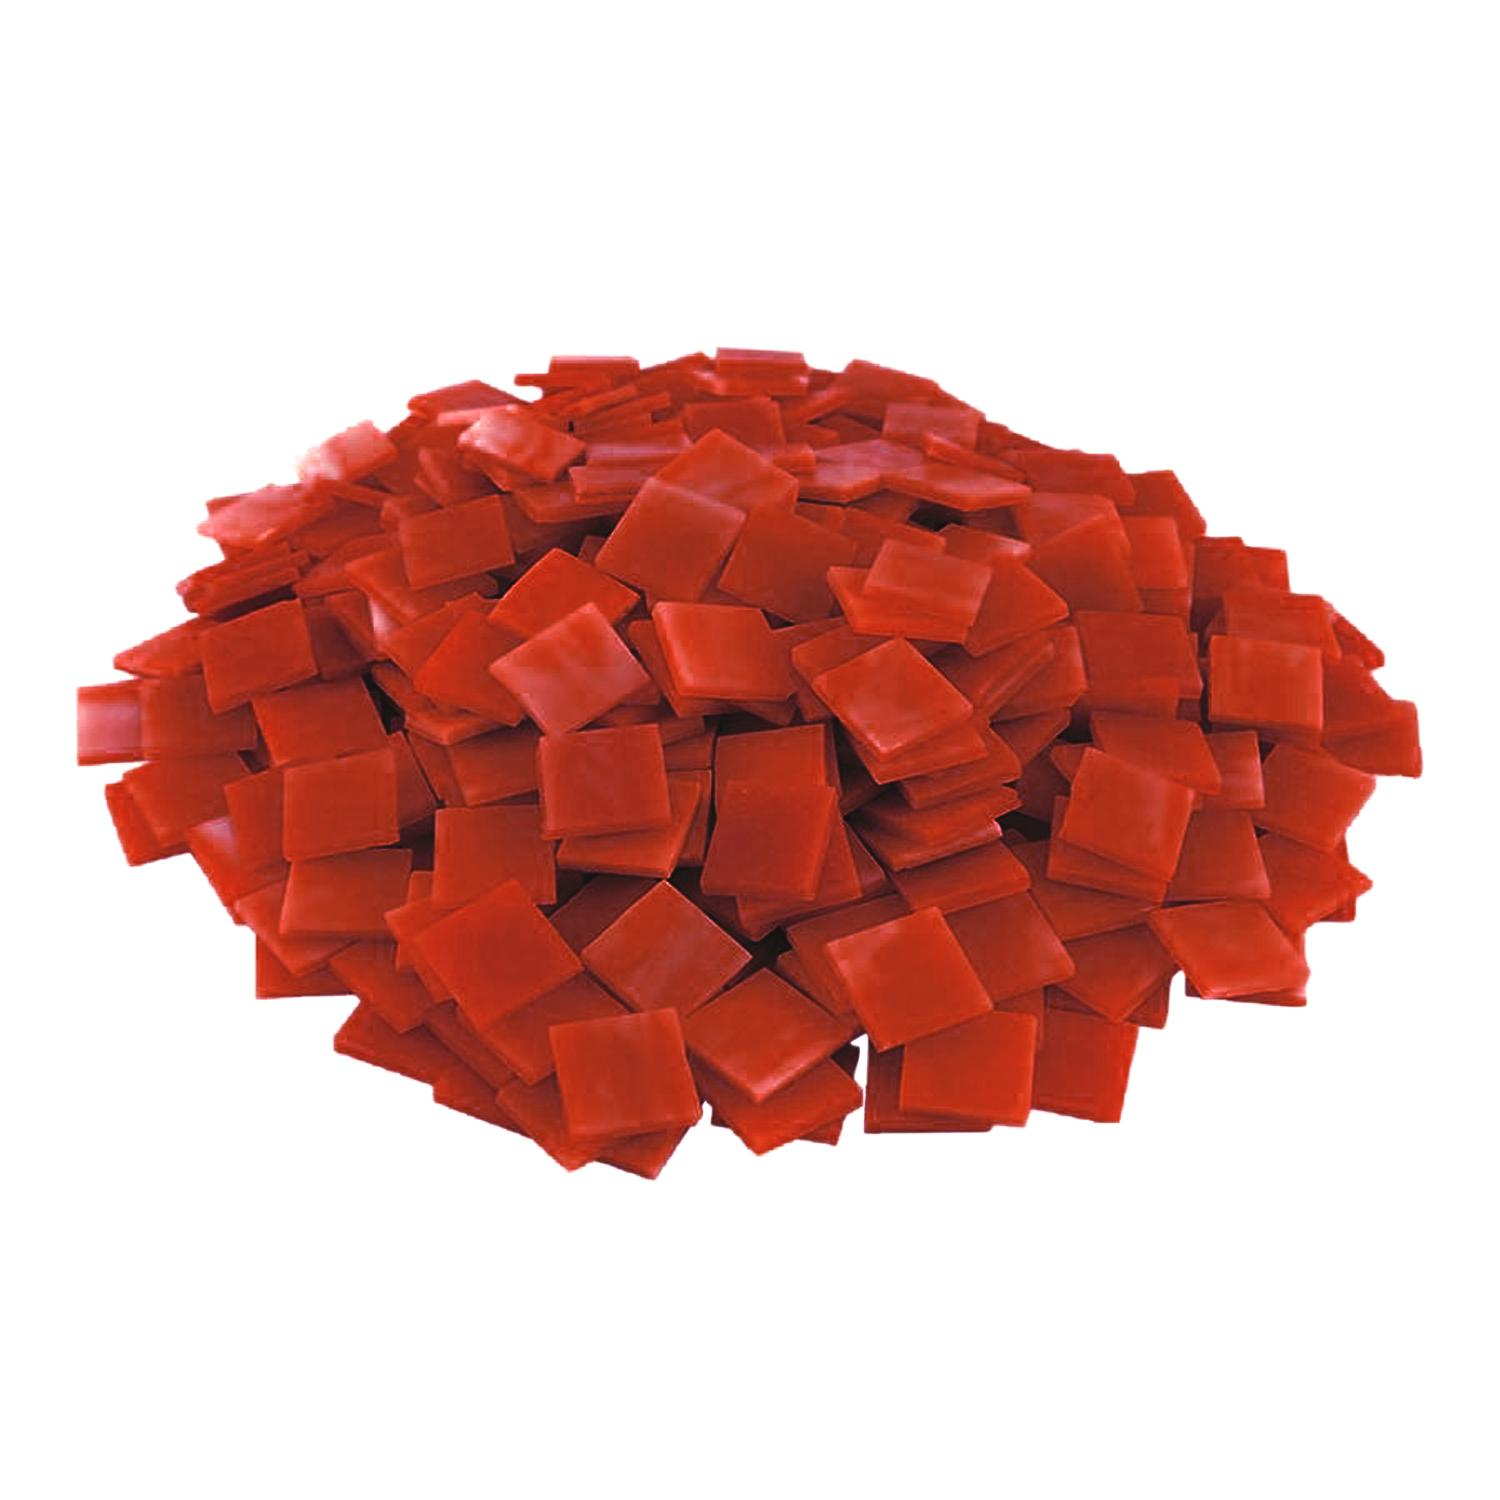 3/4 Orange Transparent Stained Glass Chips - 480 Pieces